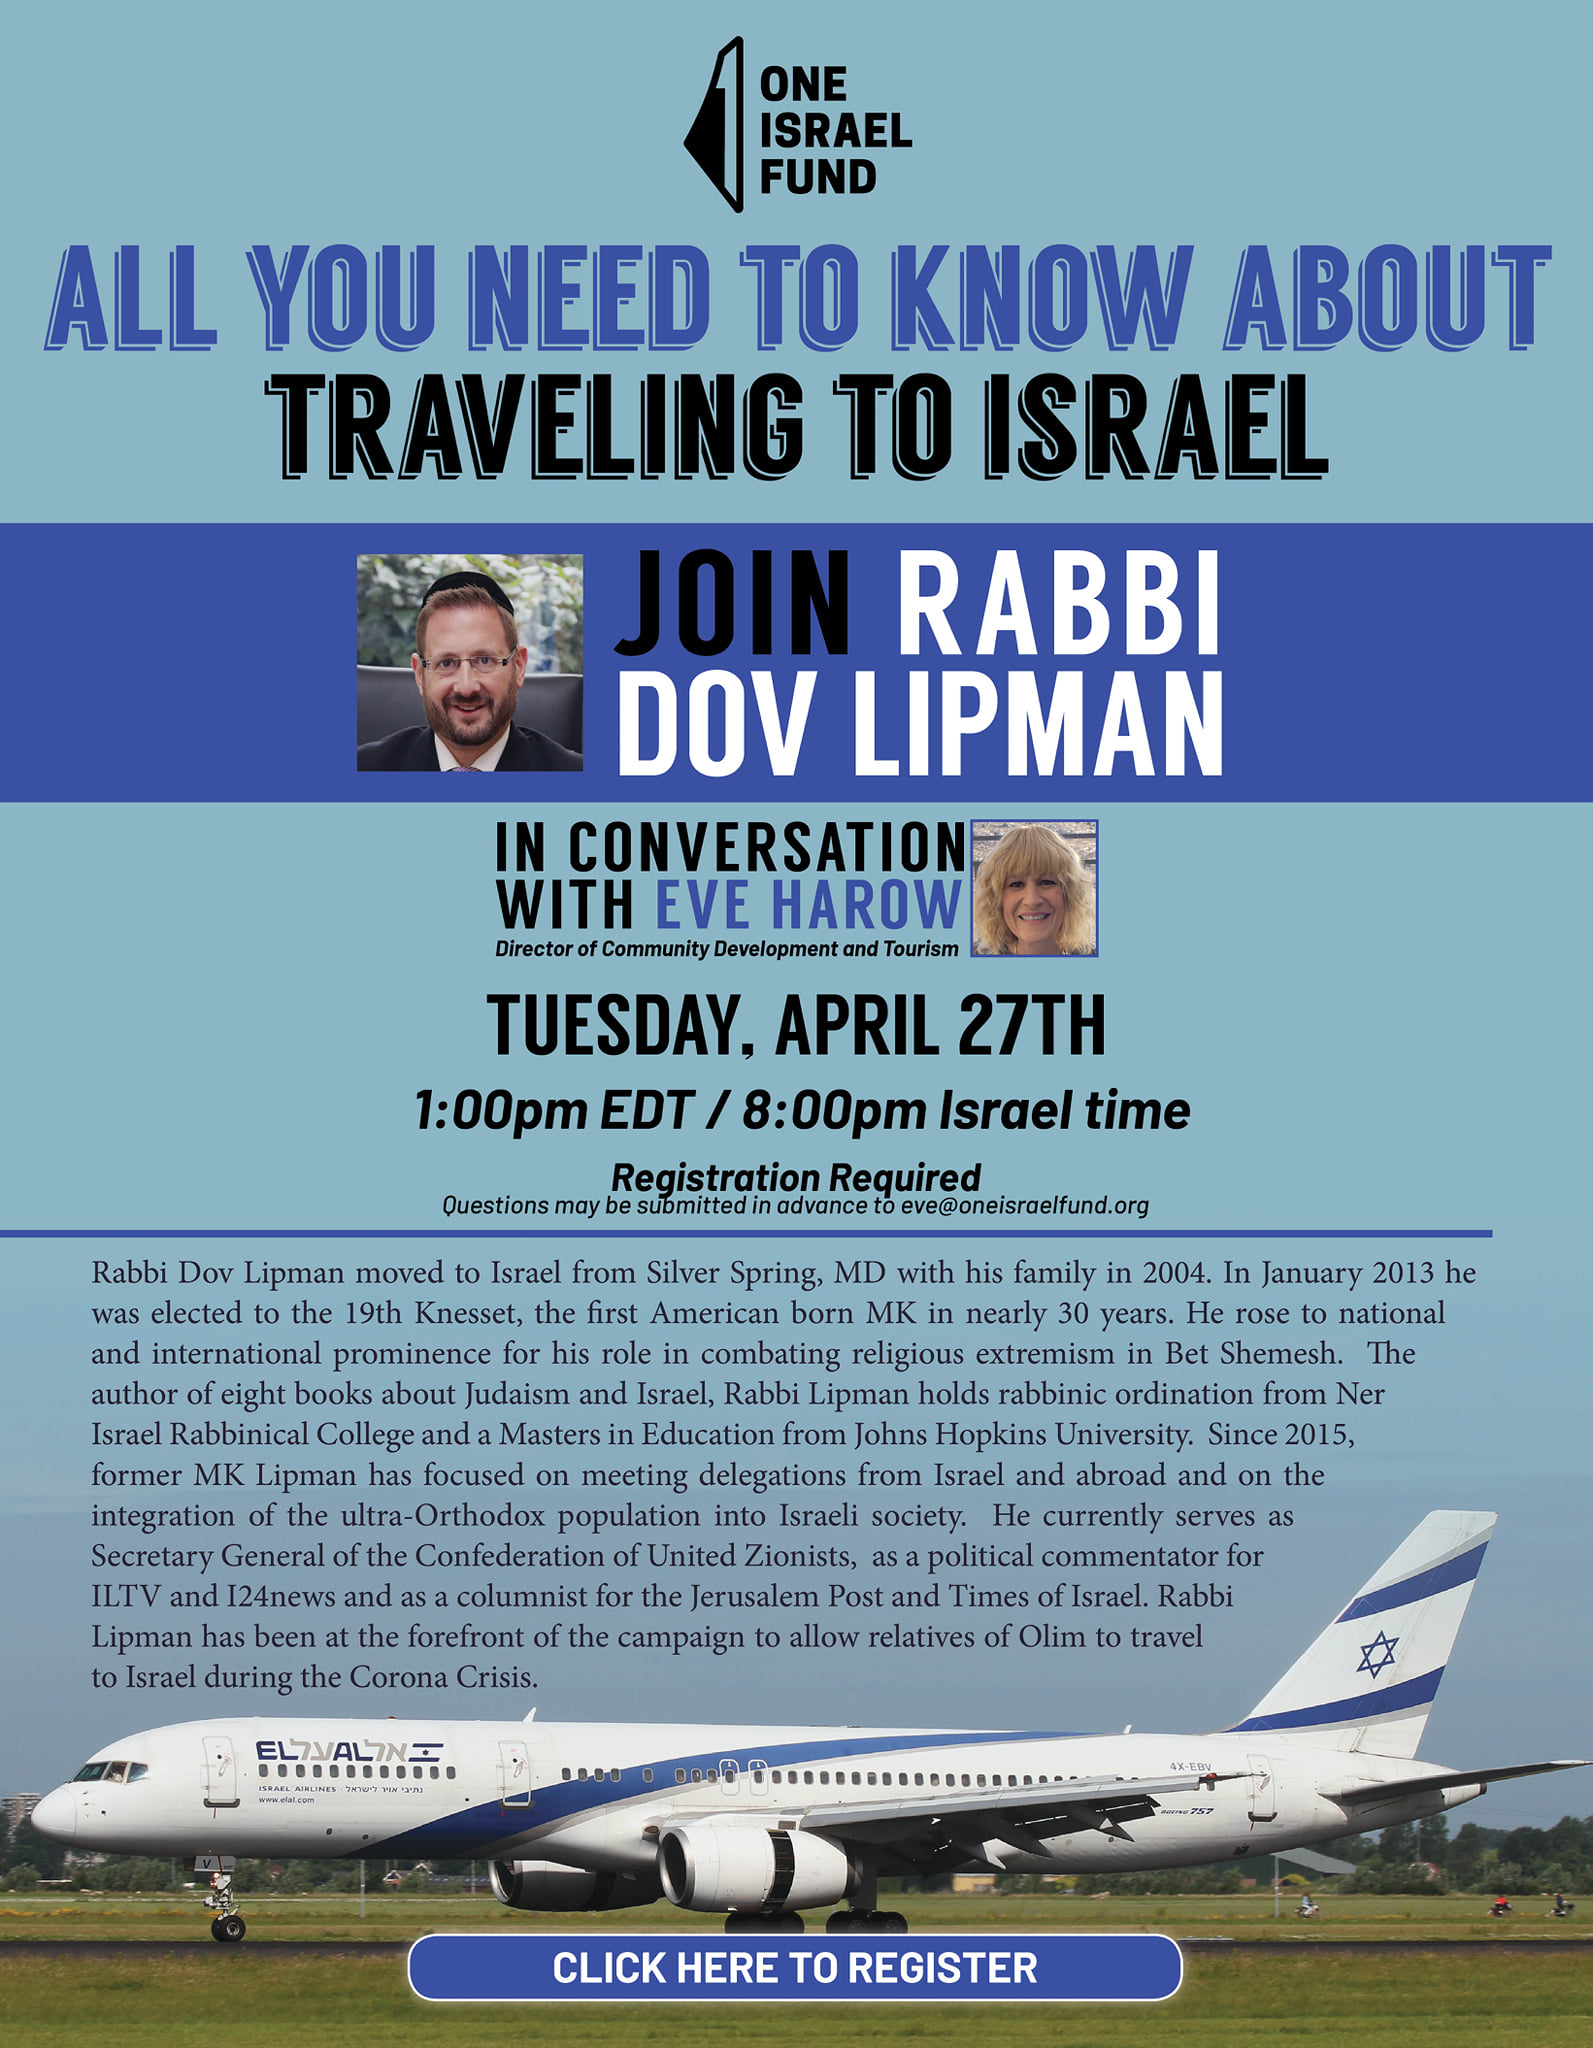 WEBINAR ABOUT COMING TO ISRAEL IN THESE CRAZY TIMES: All You Need To Know About Travelling To Israel